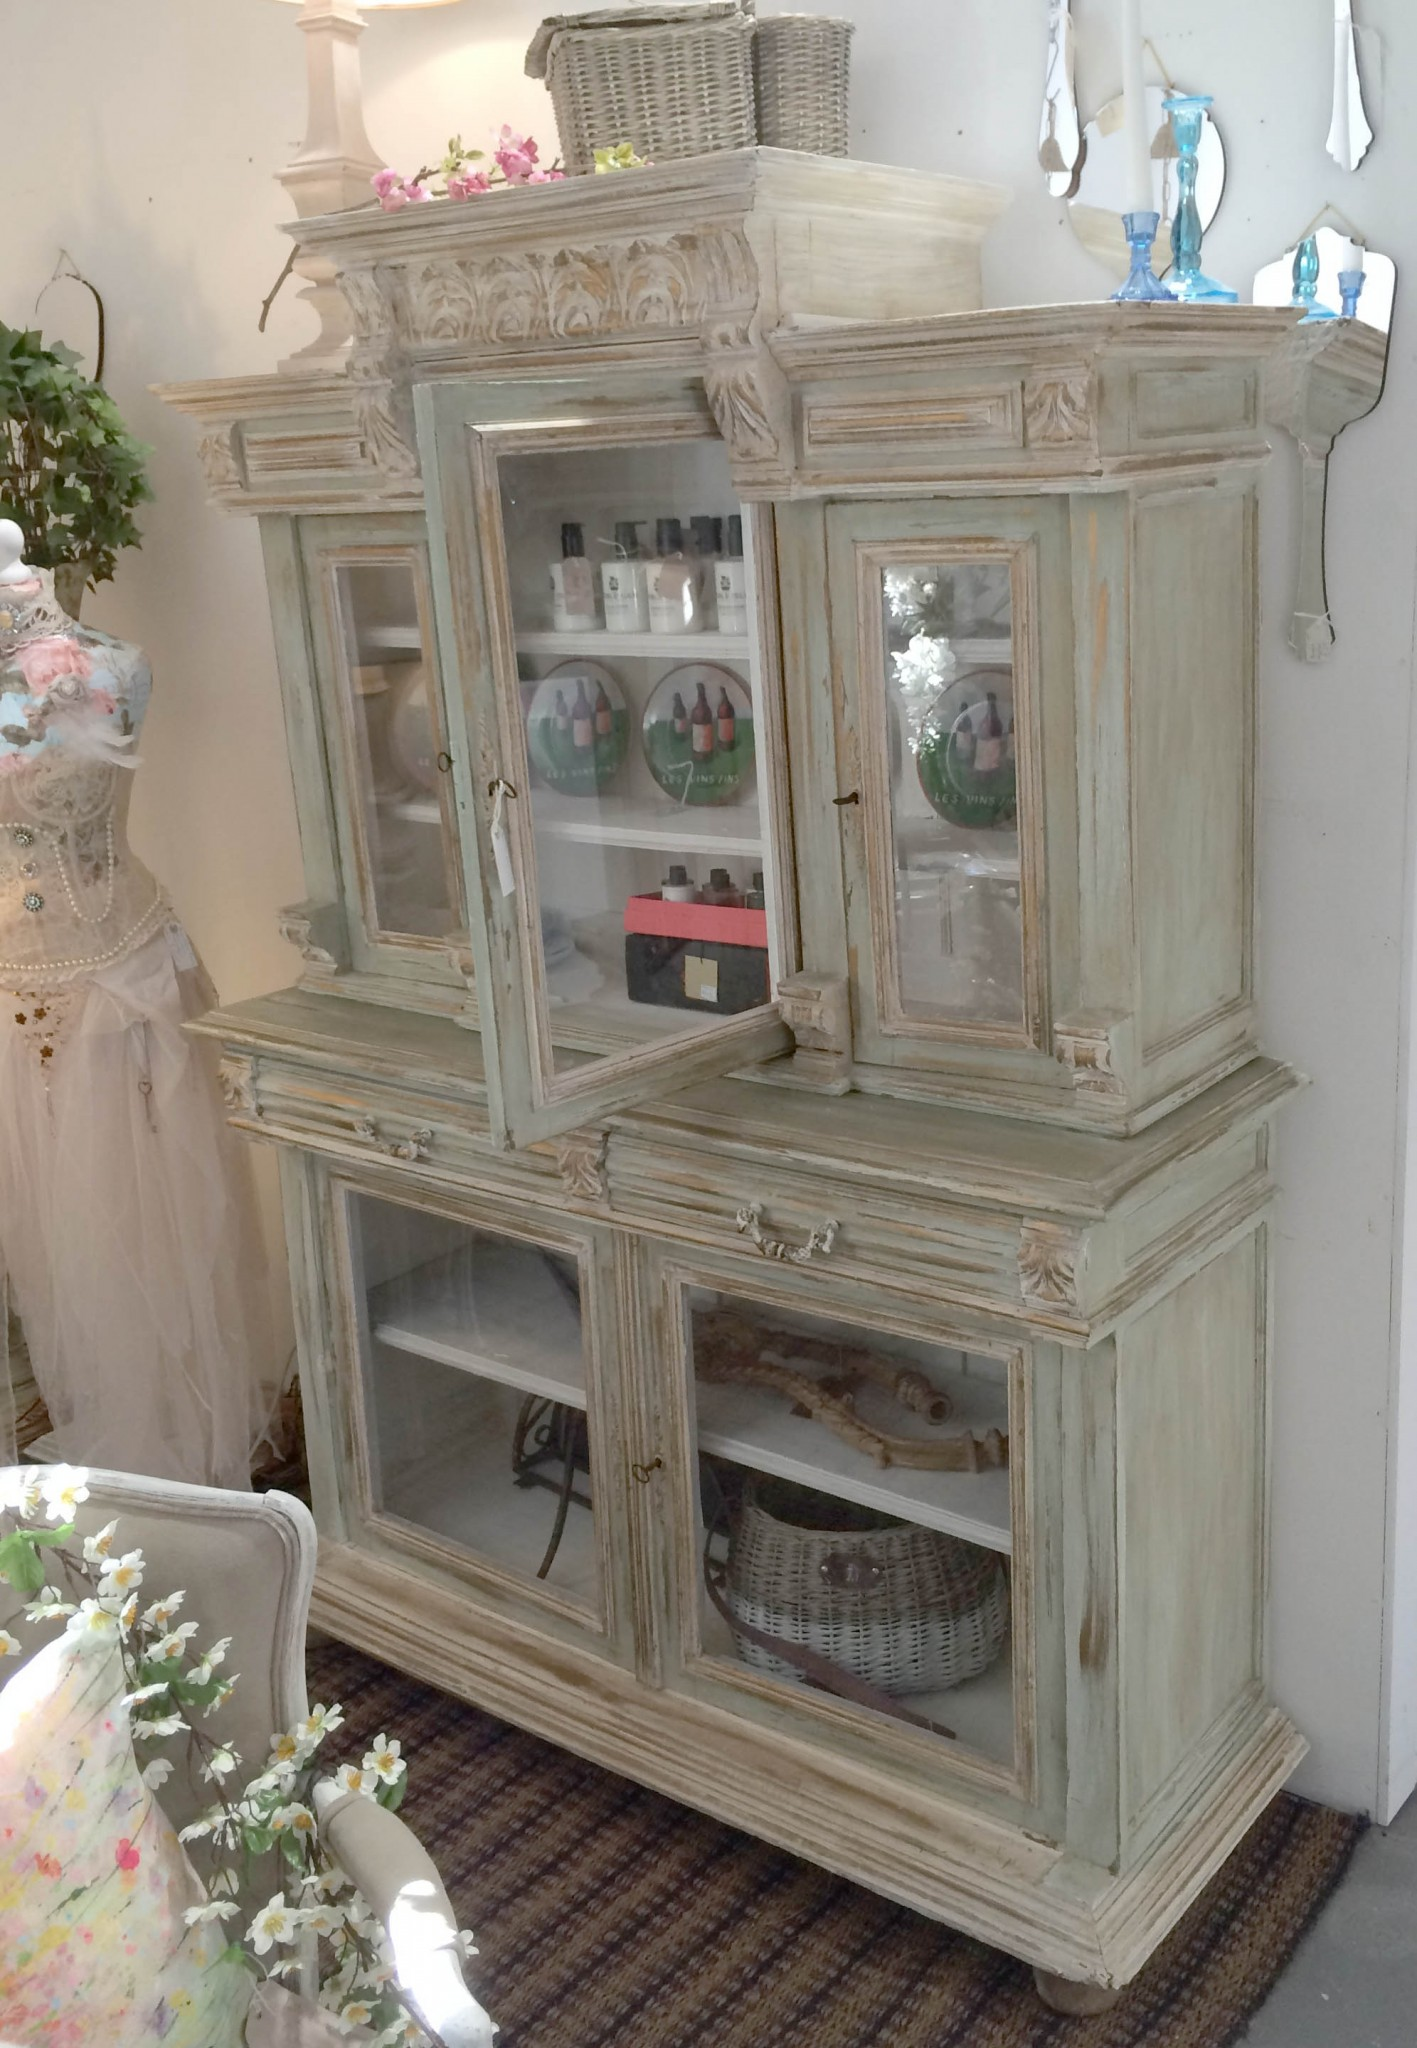 French decorative dresser